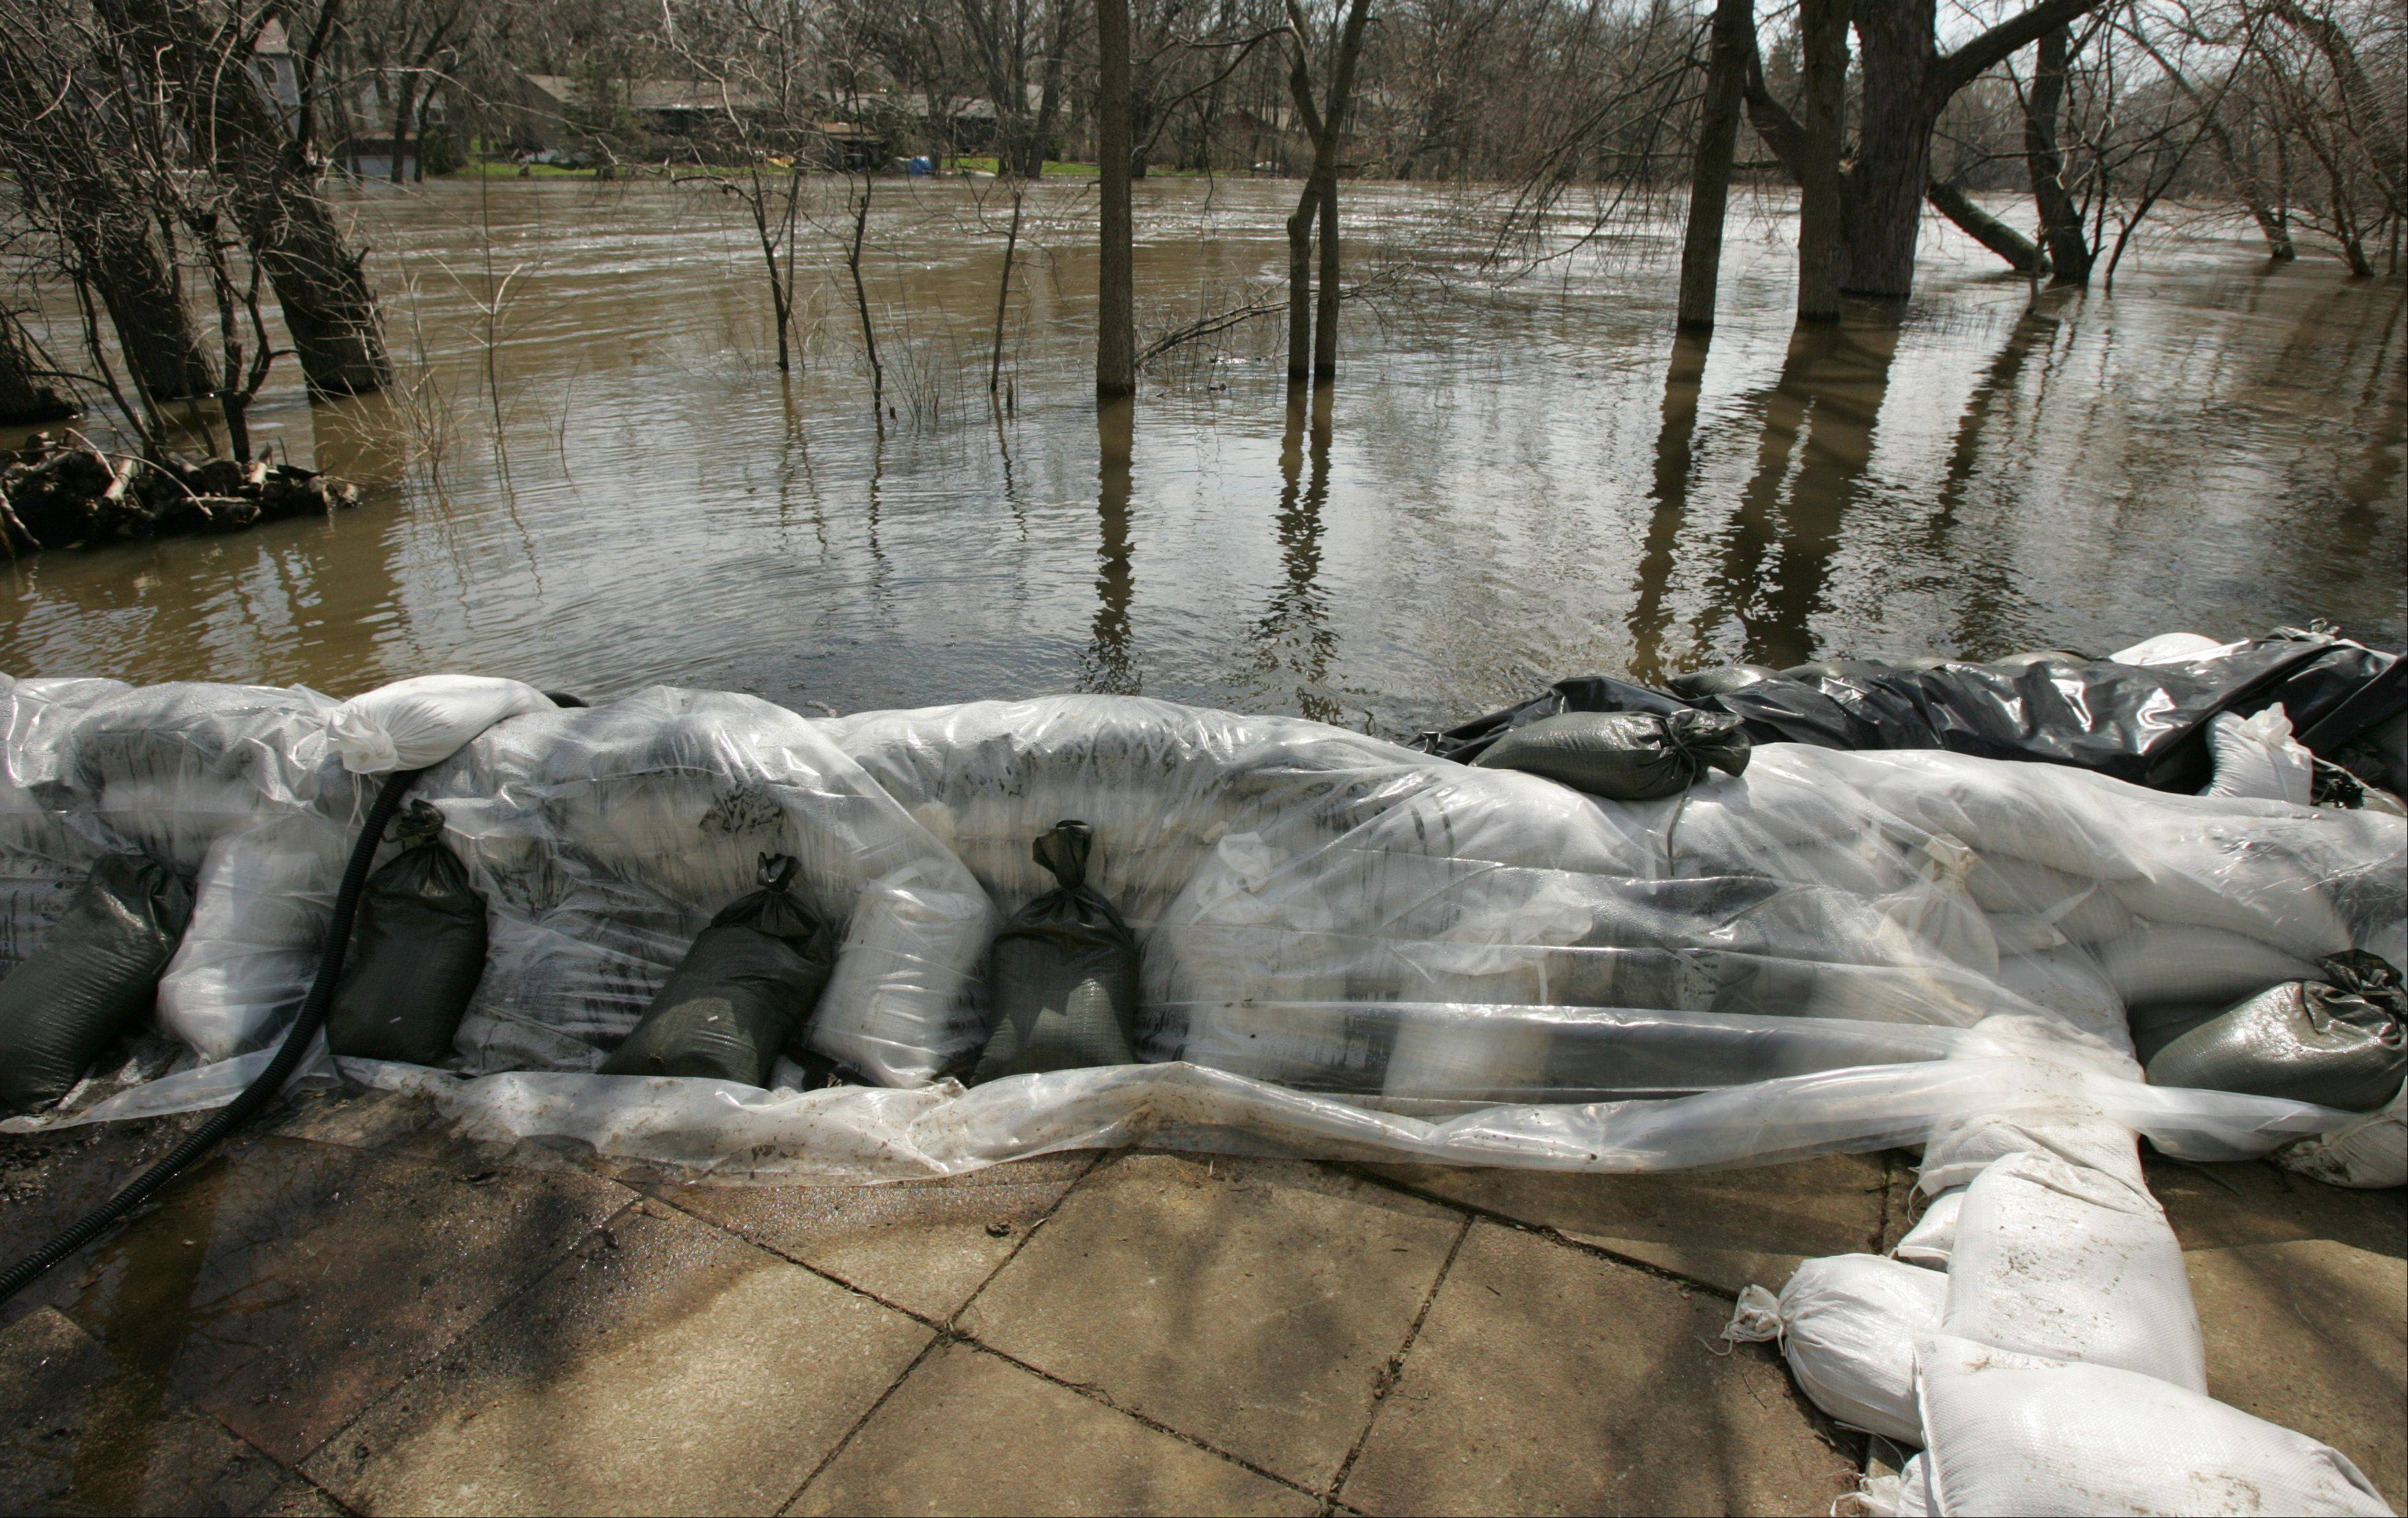 A wall of sandbags is keeping the Fox River at bay Monday behind Tony Angarola's property in Algonquin, and he's hoping the rain this week is minimal to keep the level from rising further.